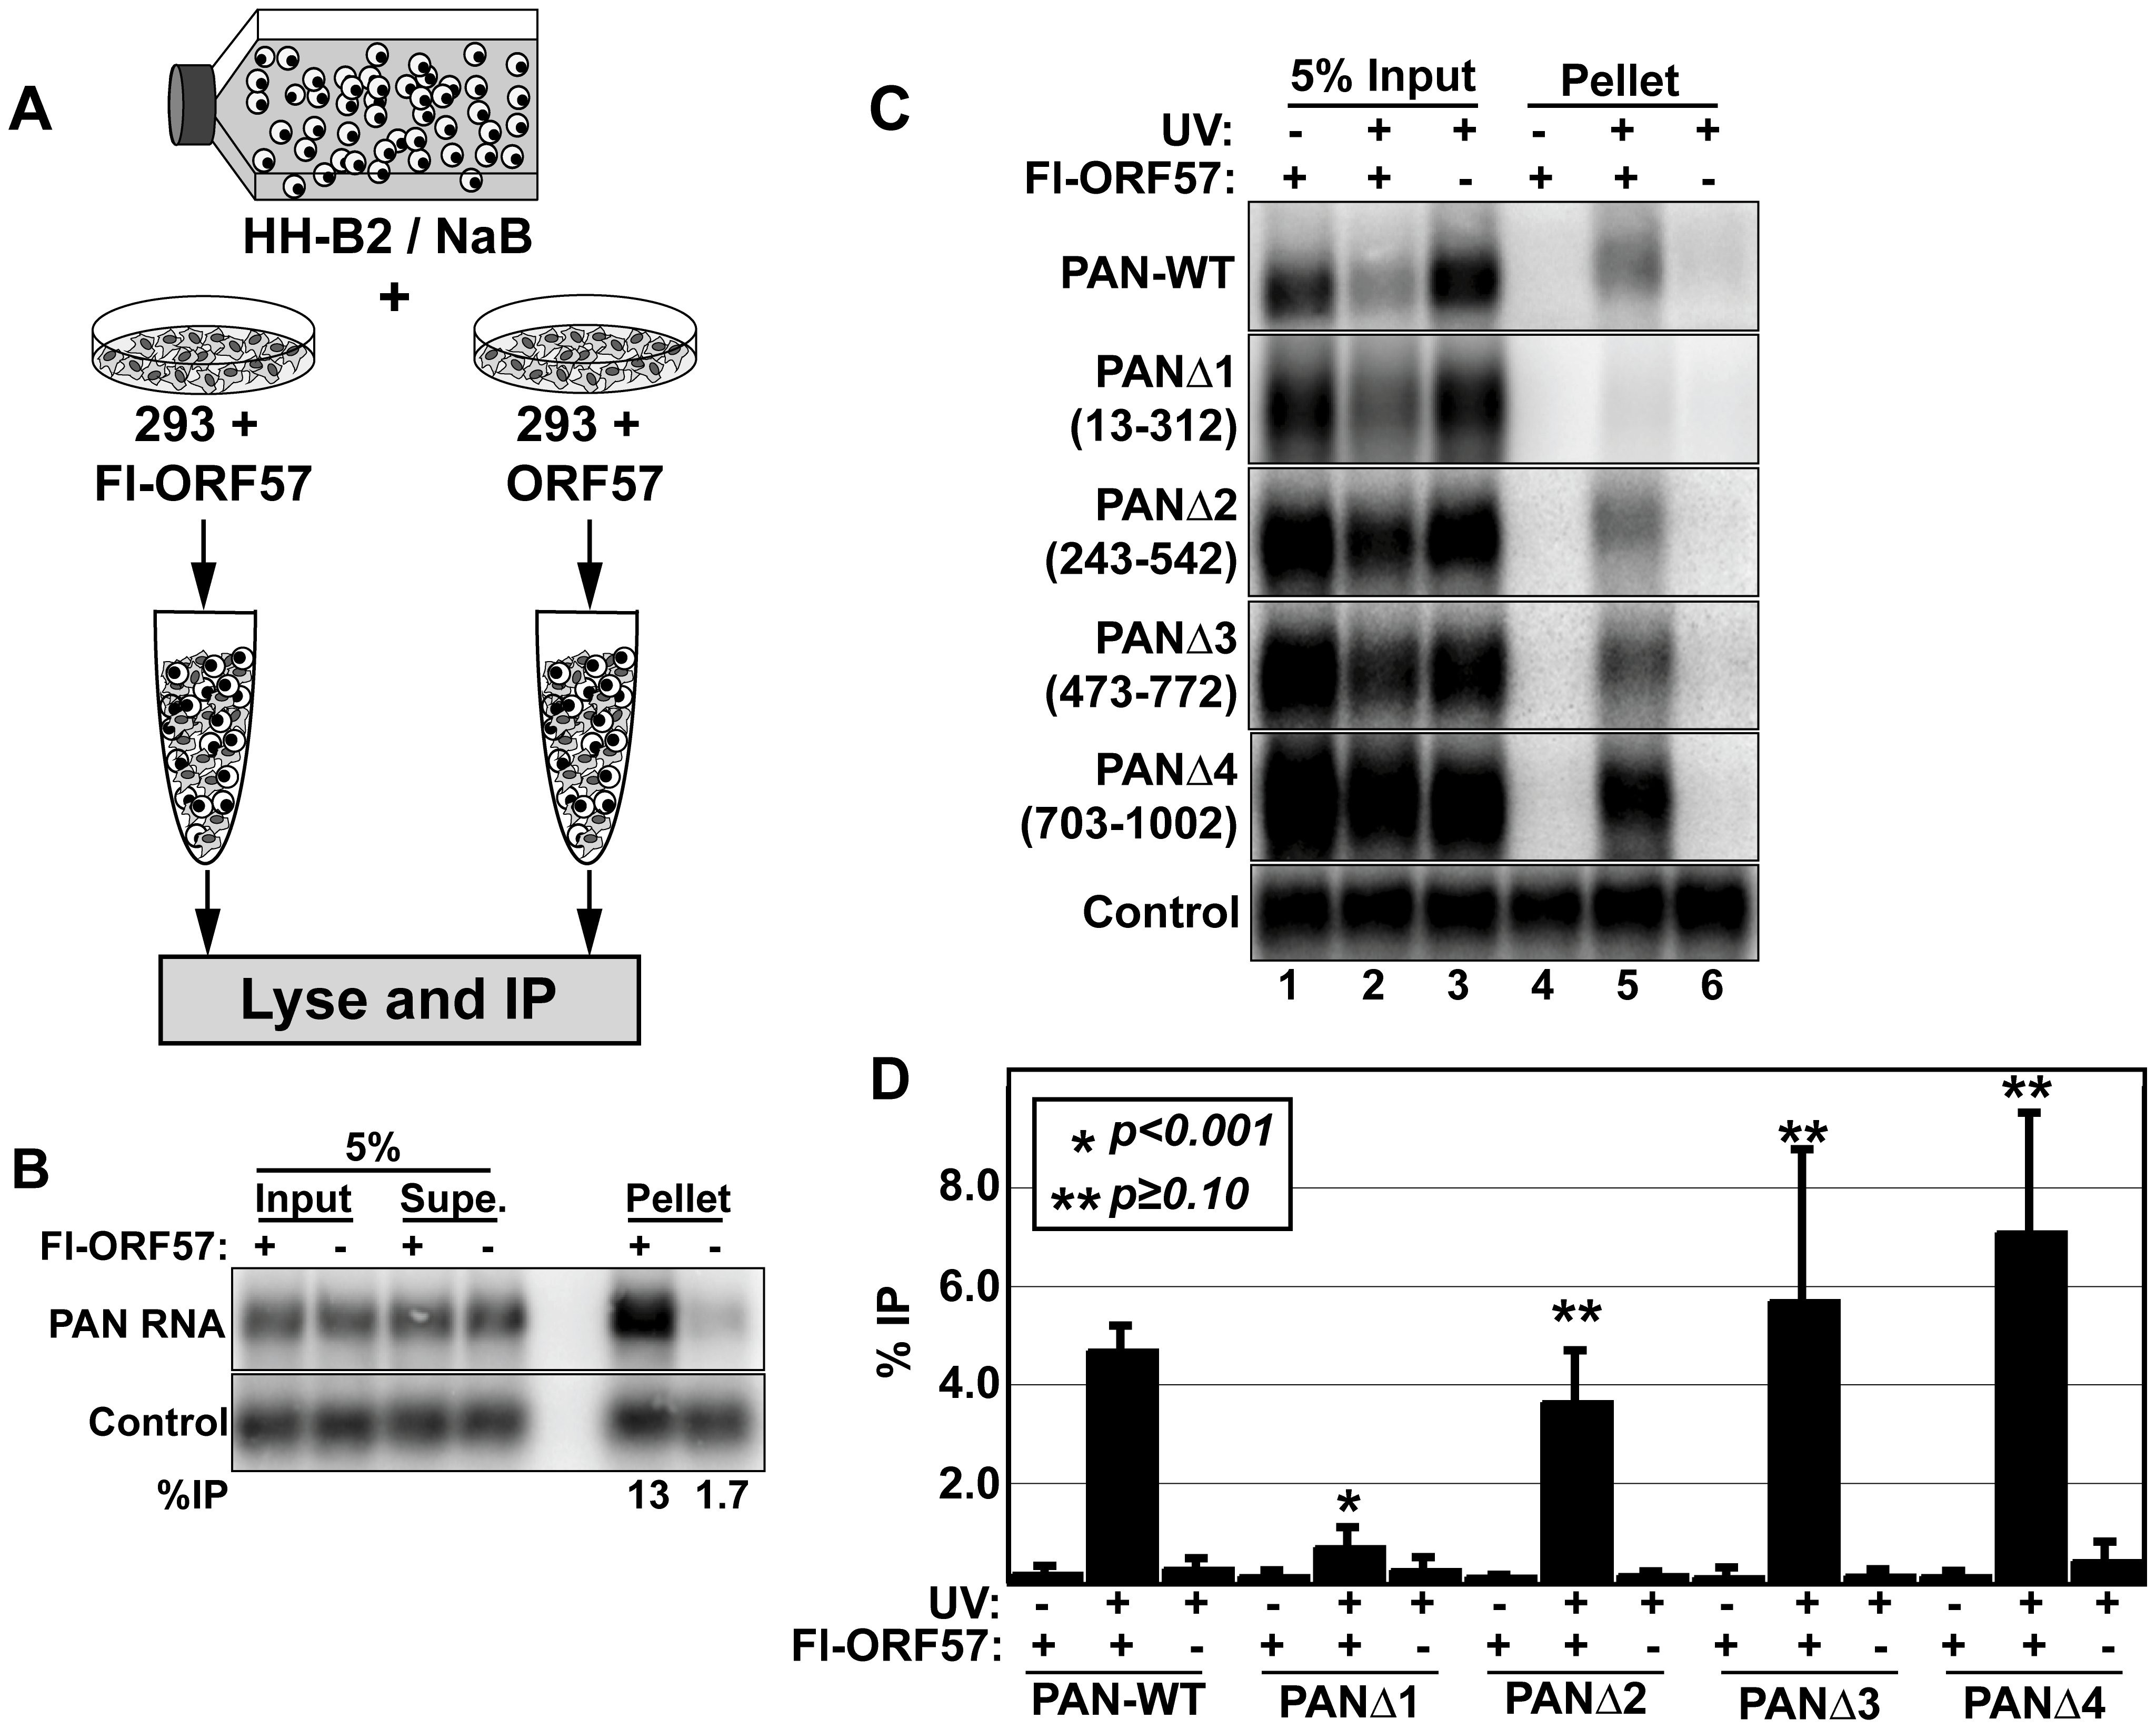 ORF57 binds PAN RNA in transfected cells.